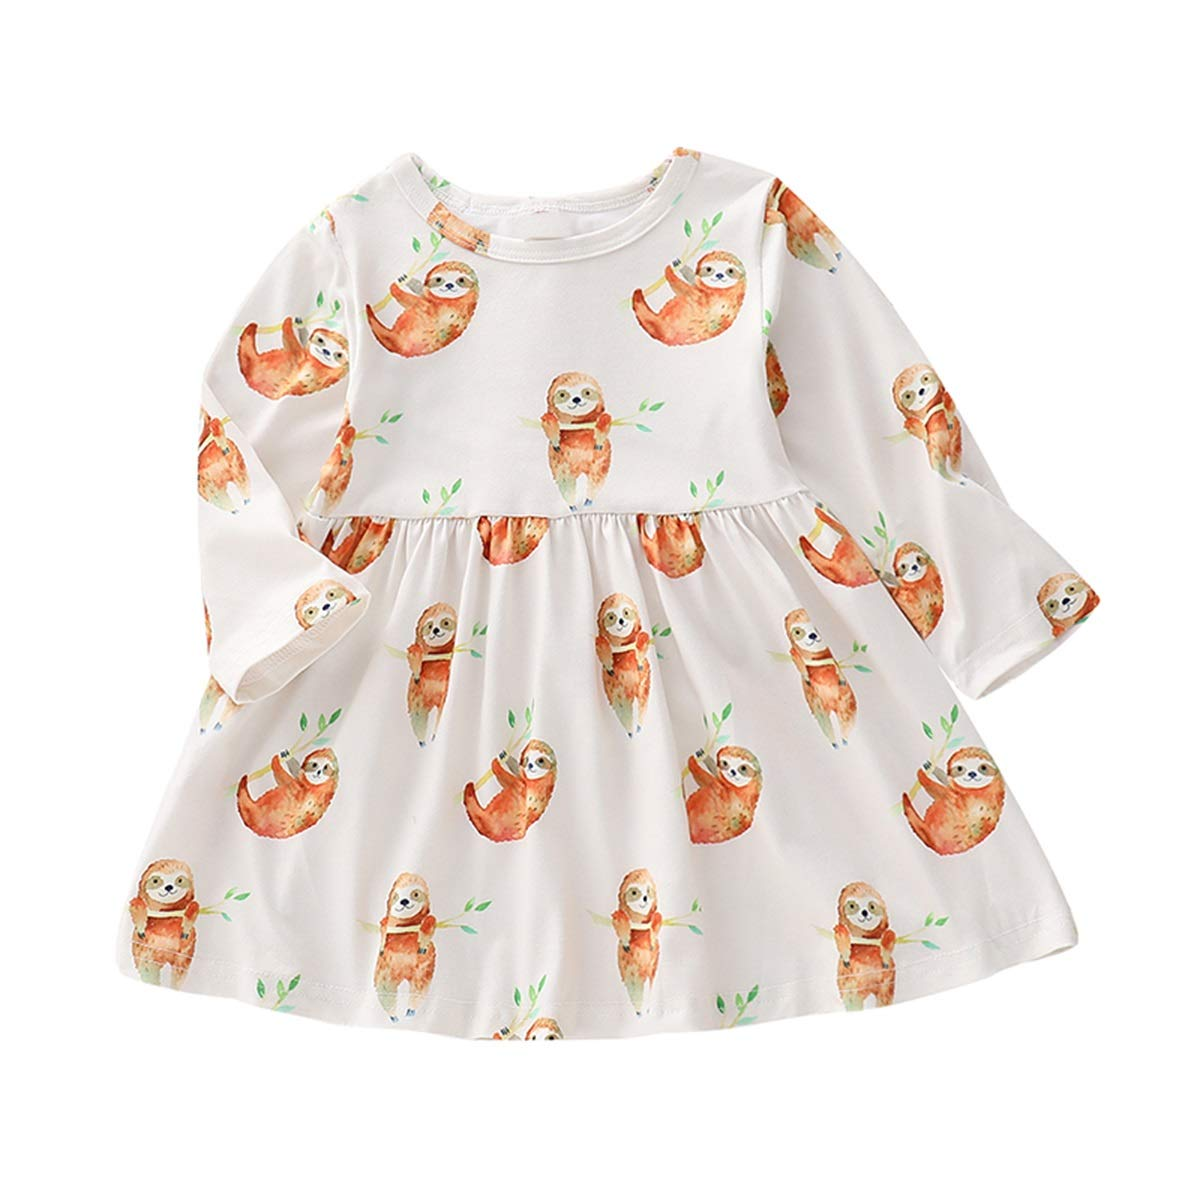 0-24M Baby Infant Girls Animal Sloth Print Swing Dresses Casual Outfits